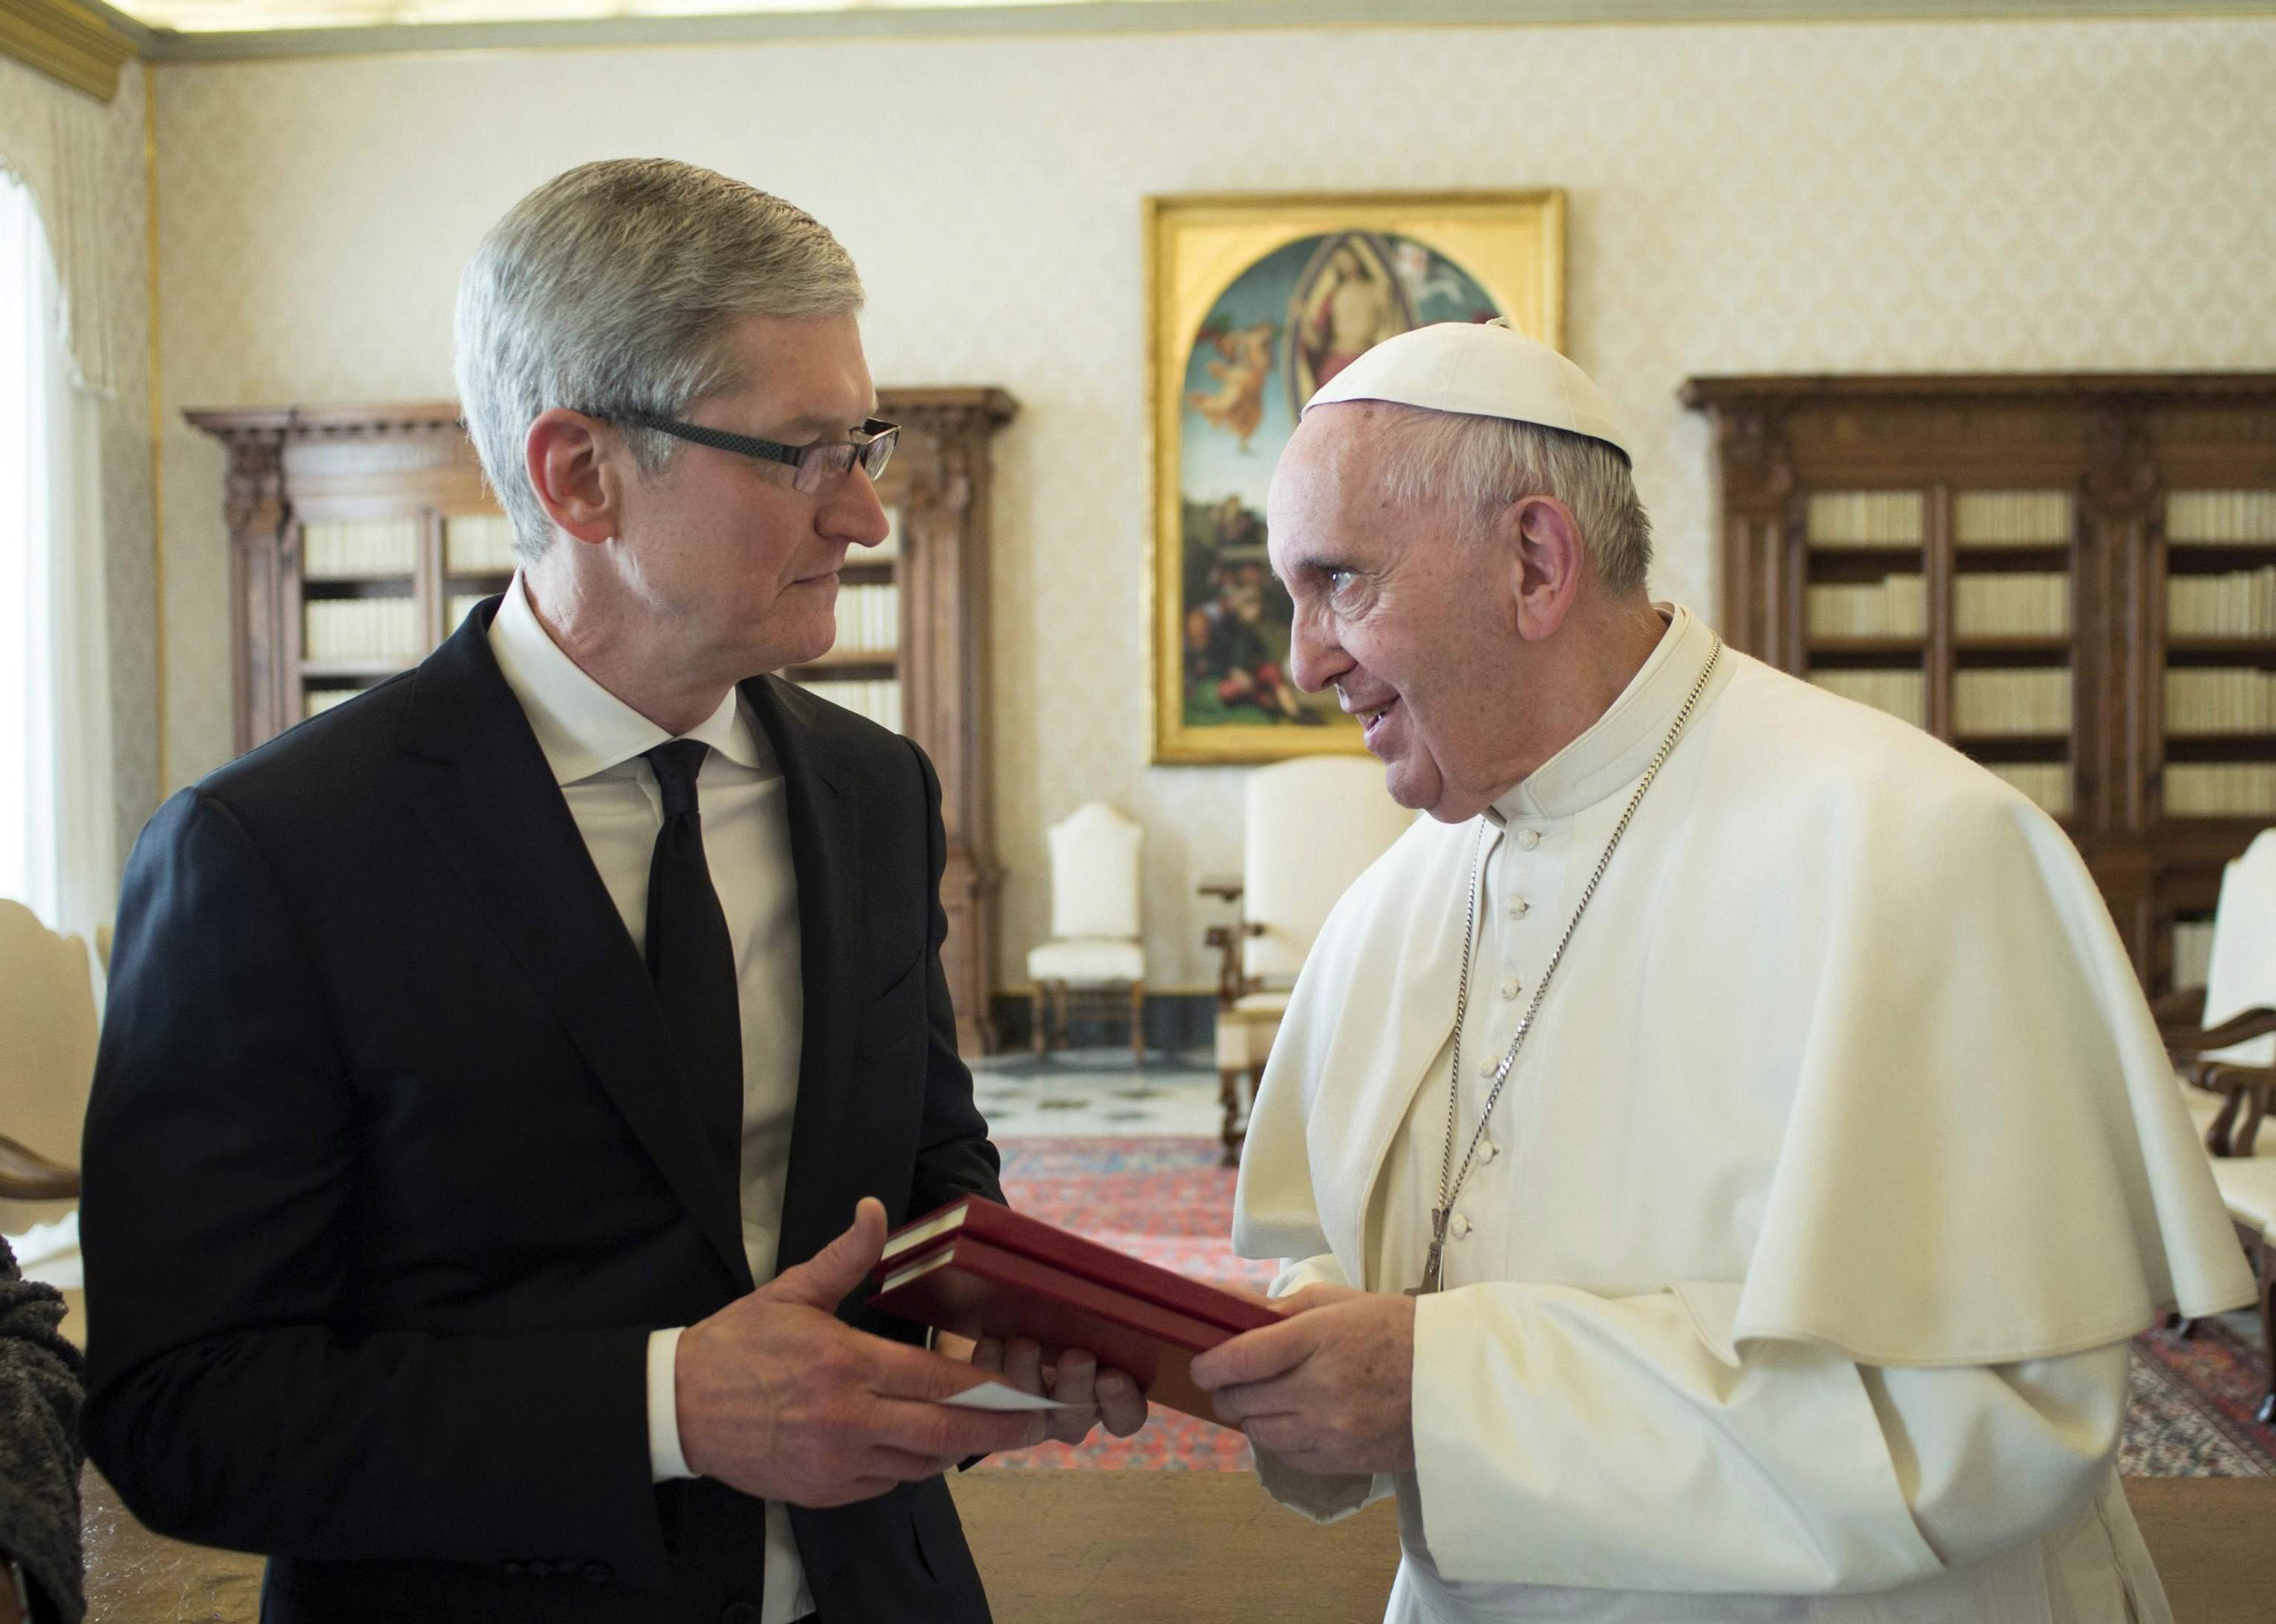 Pope Francis talks with Apple CEO Tim Cook during a private audience in the Vatican, on Jan. 22, 2016.